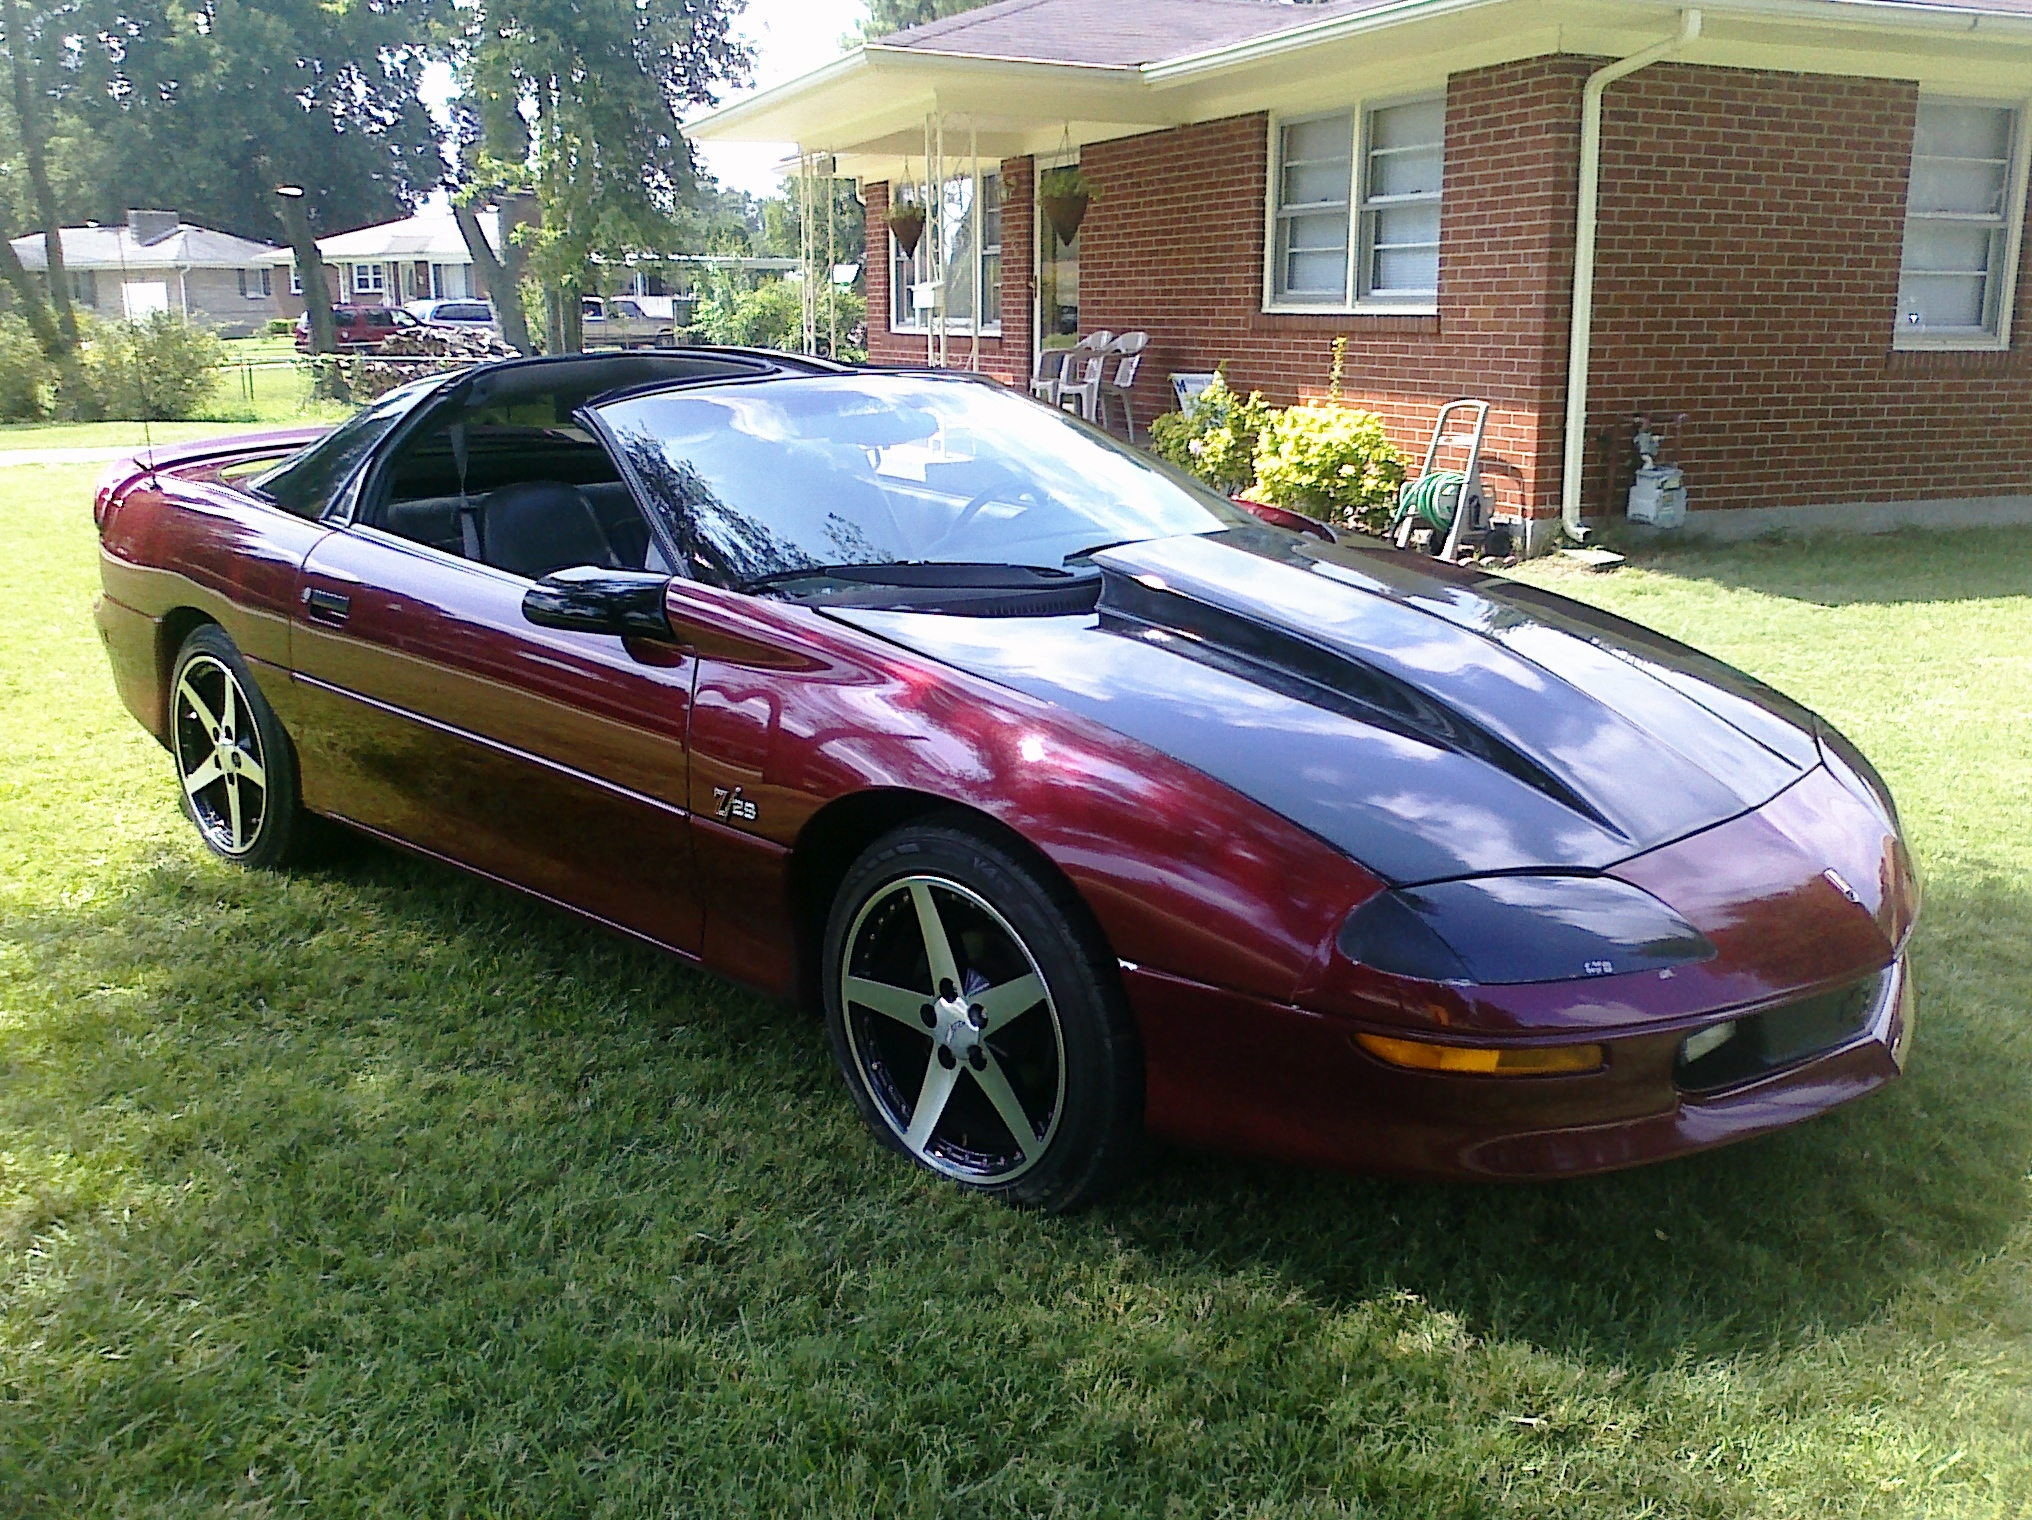 eezy@bellsouth.n 1994 Chevrolet Camaro 14625820